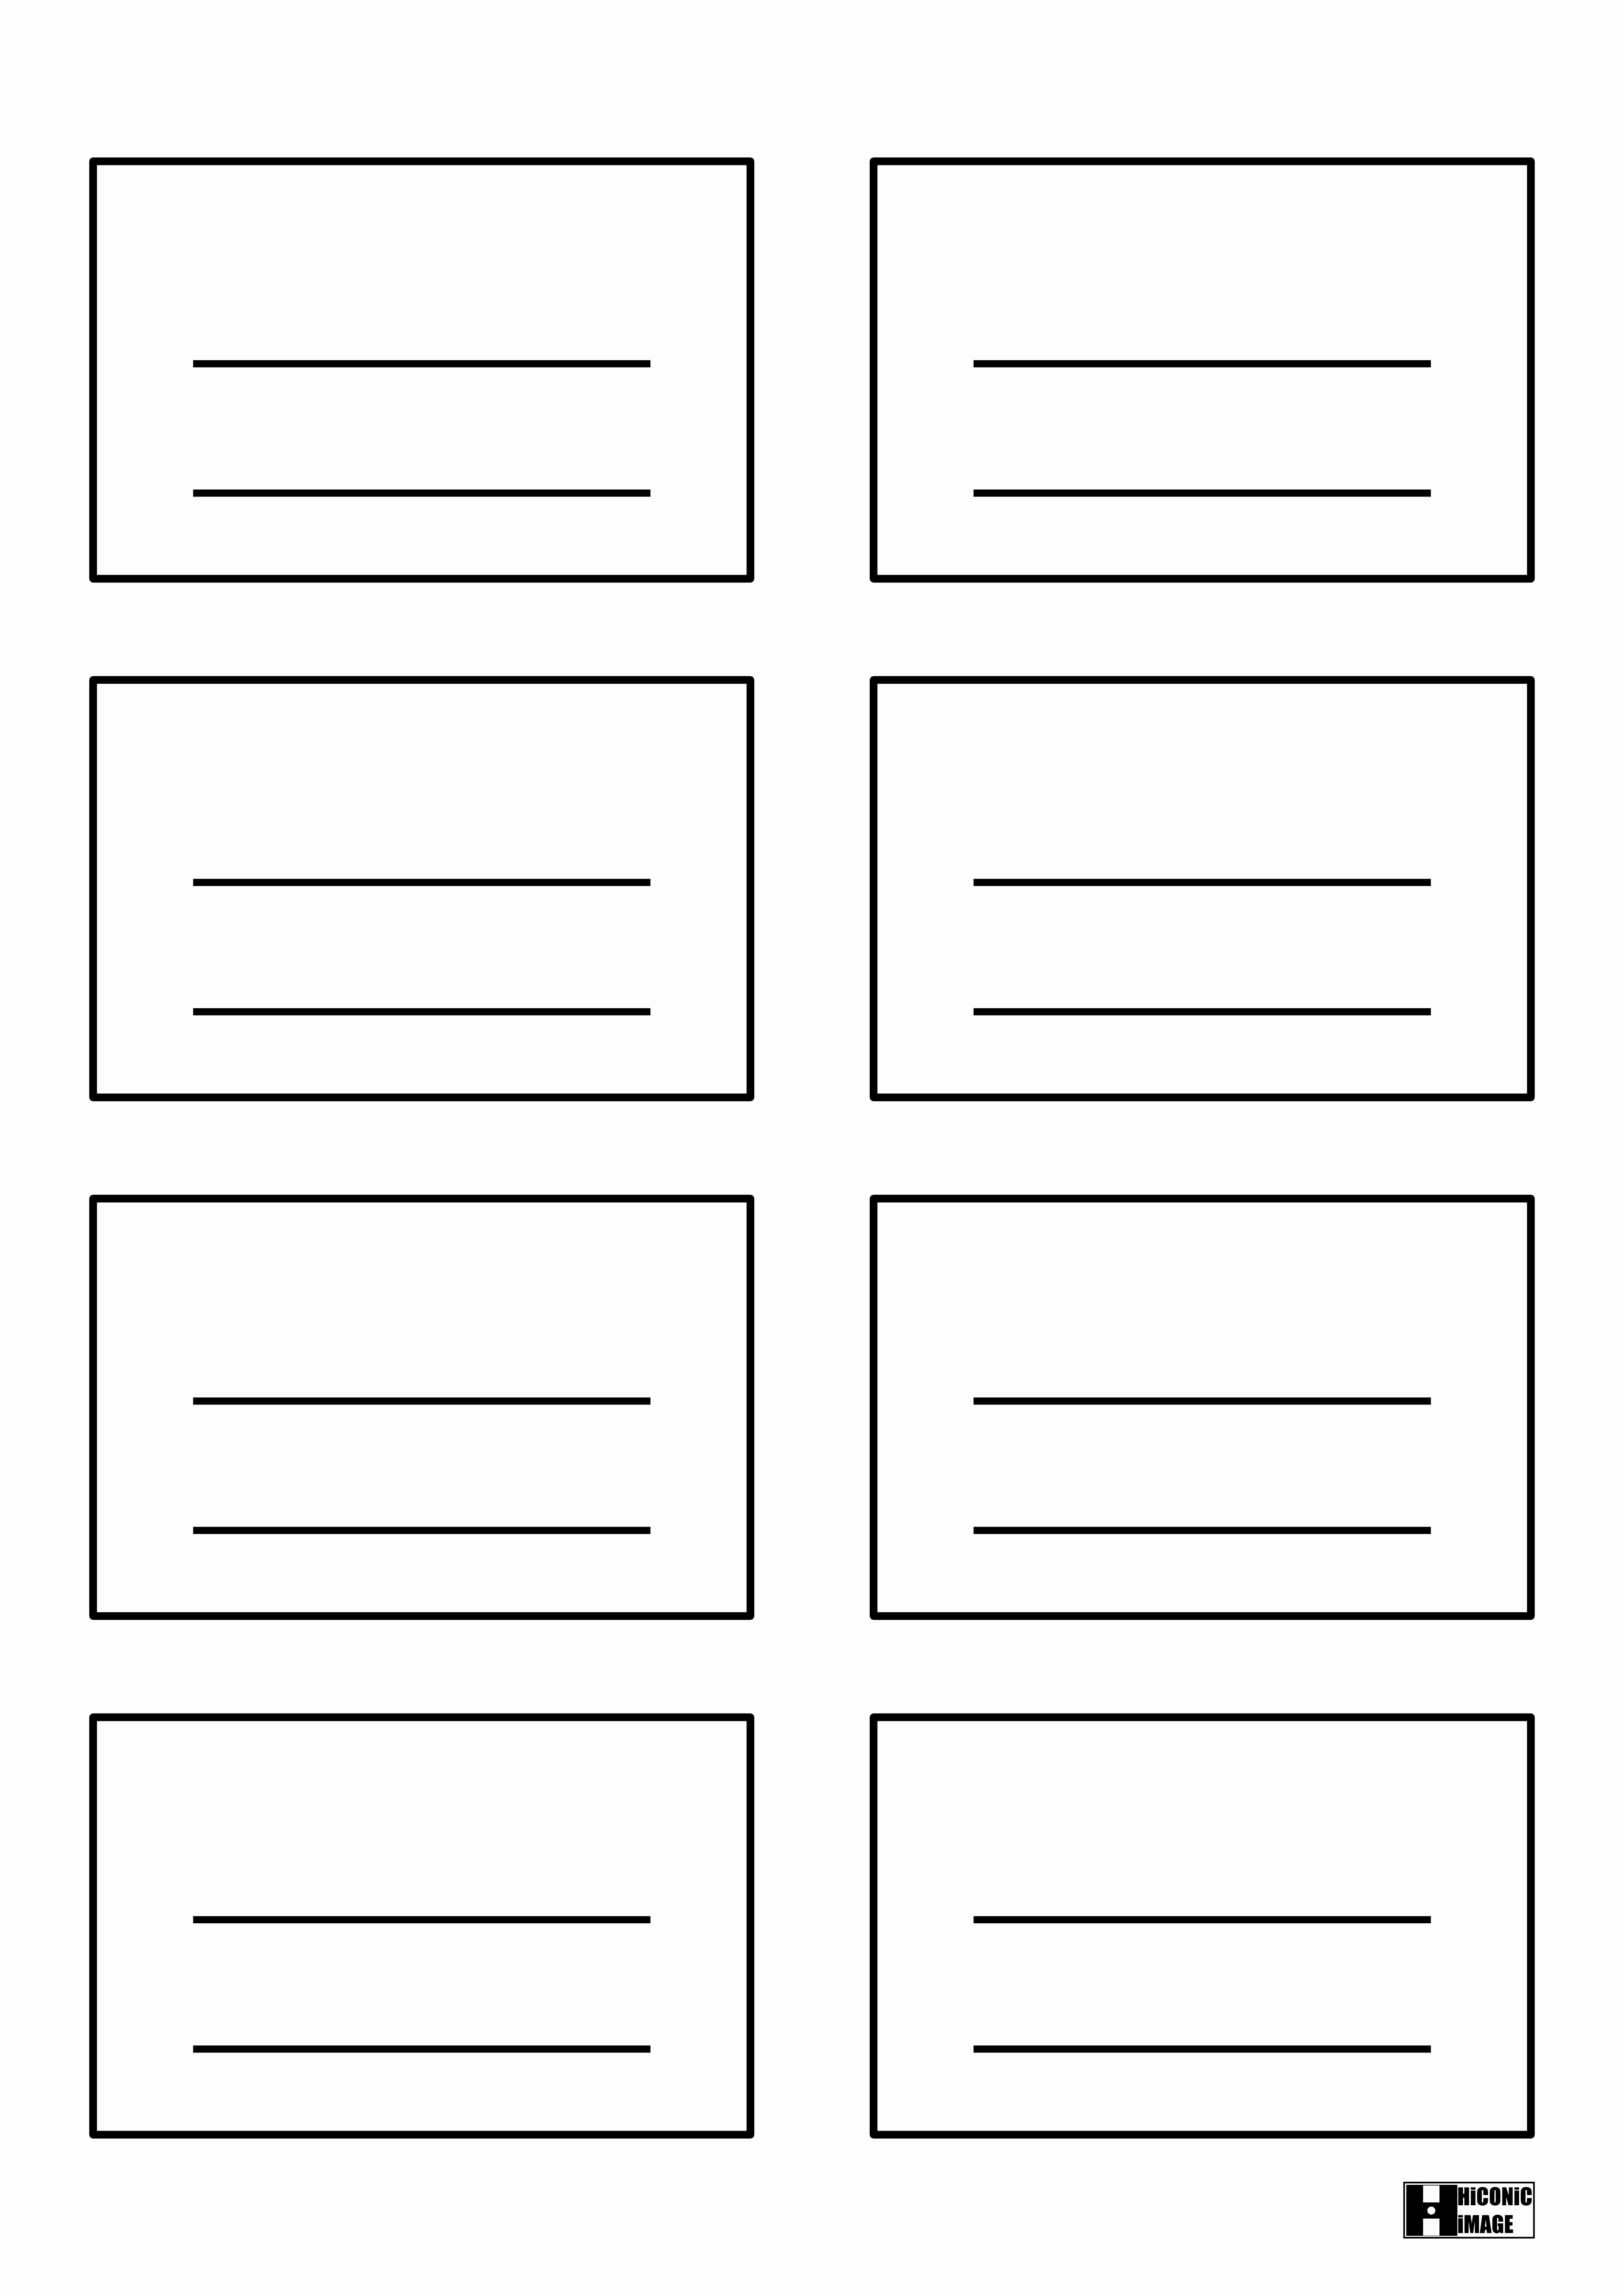 Word Flash Card Template Inspirational Flash Card Template Word Gallery Professional Report